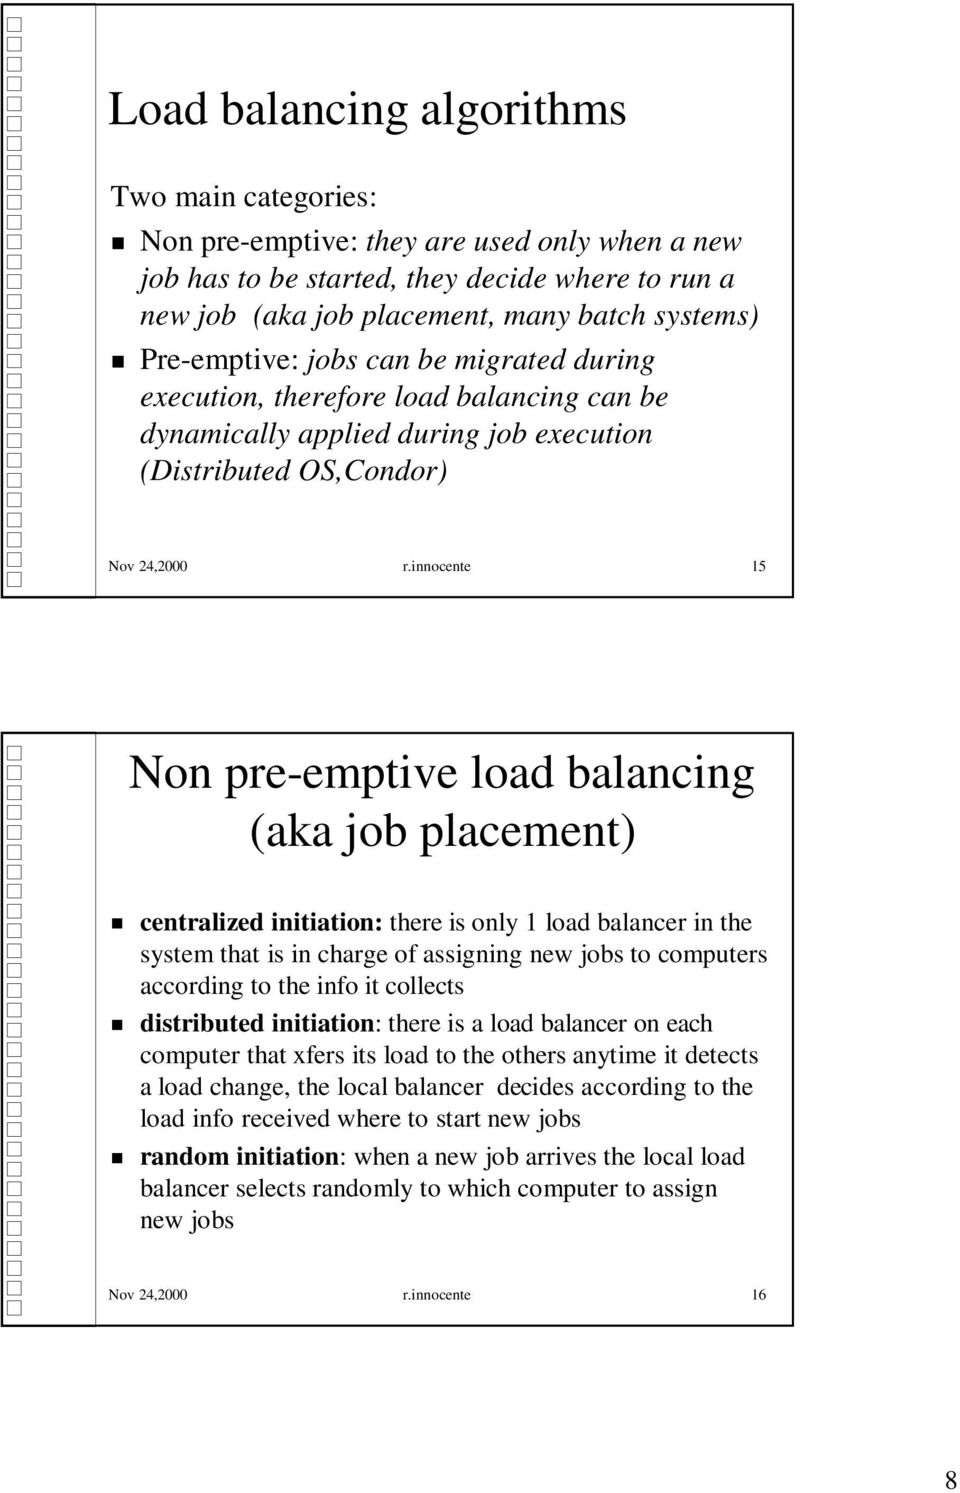 innocente 15 Non pre-emptive load balancing (aka job placement) centralized initiation: there is only 1 load balancer in the system that is in charge of assigning new jobs to computers according to